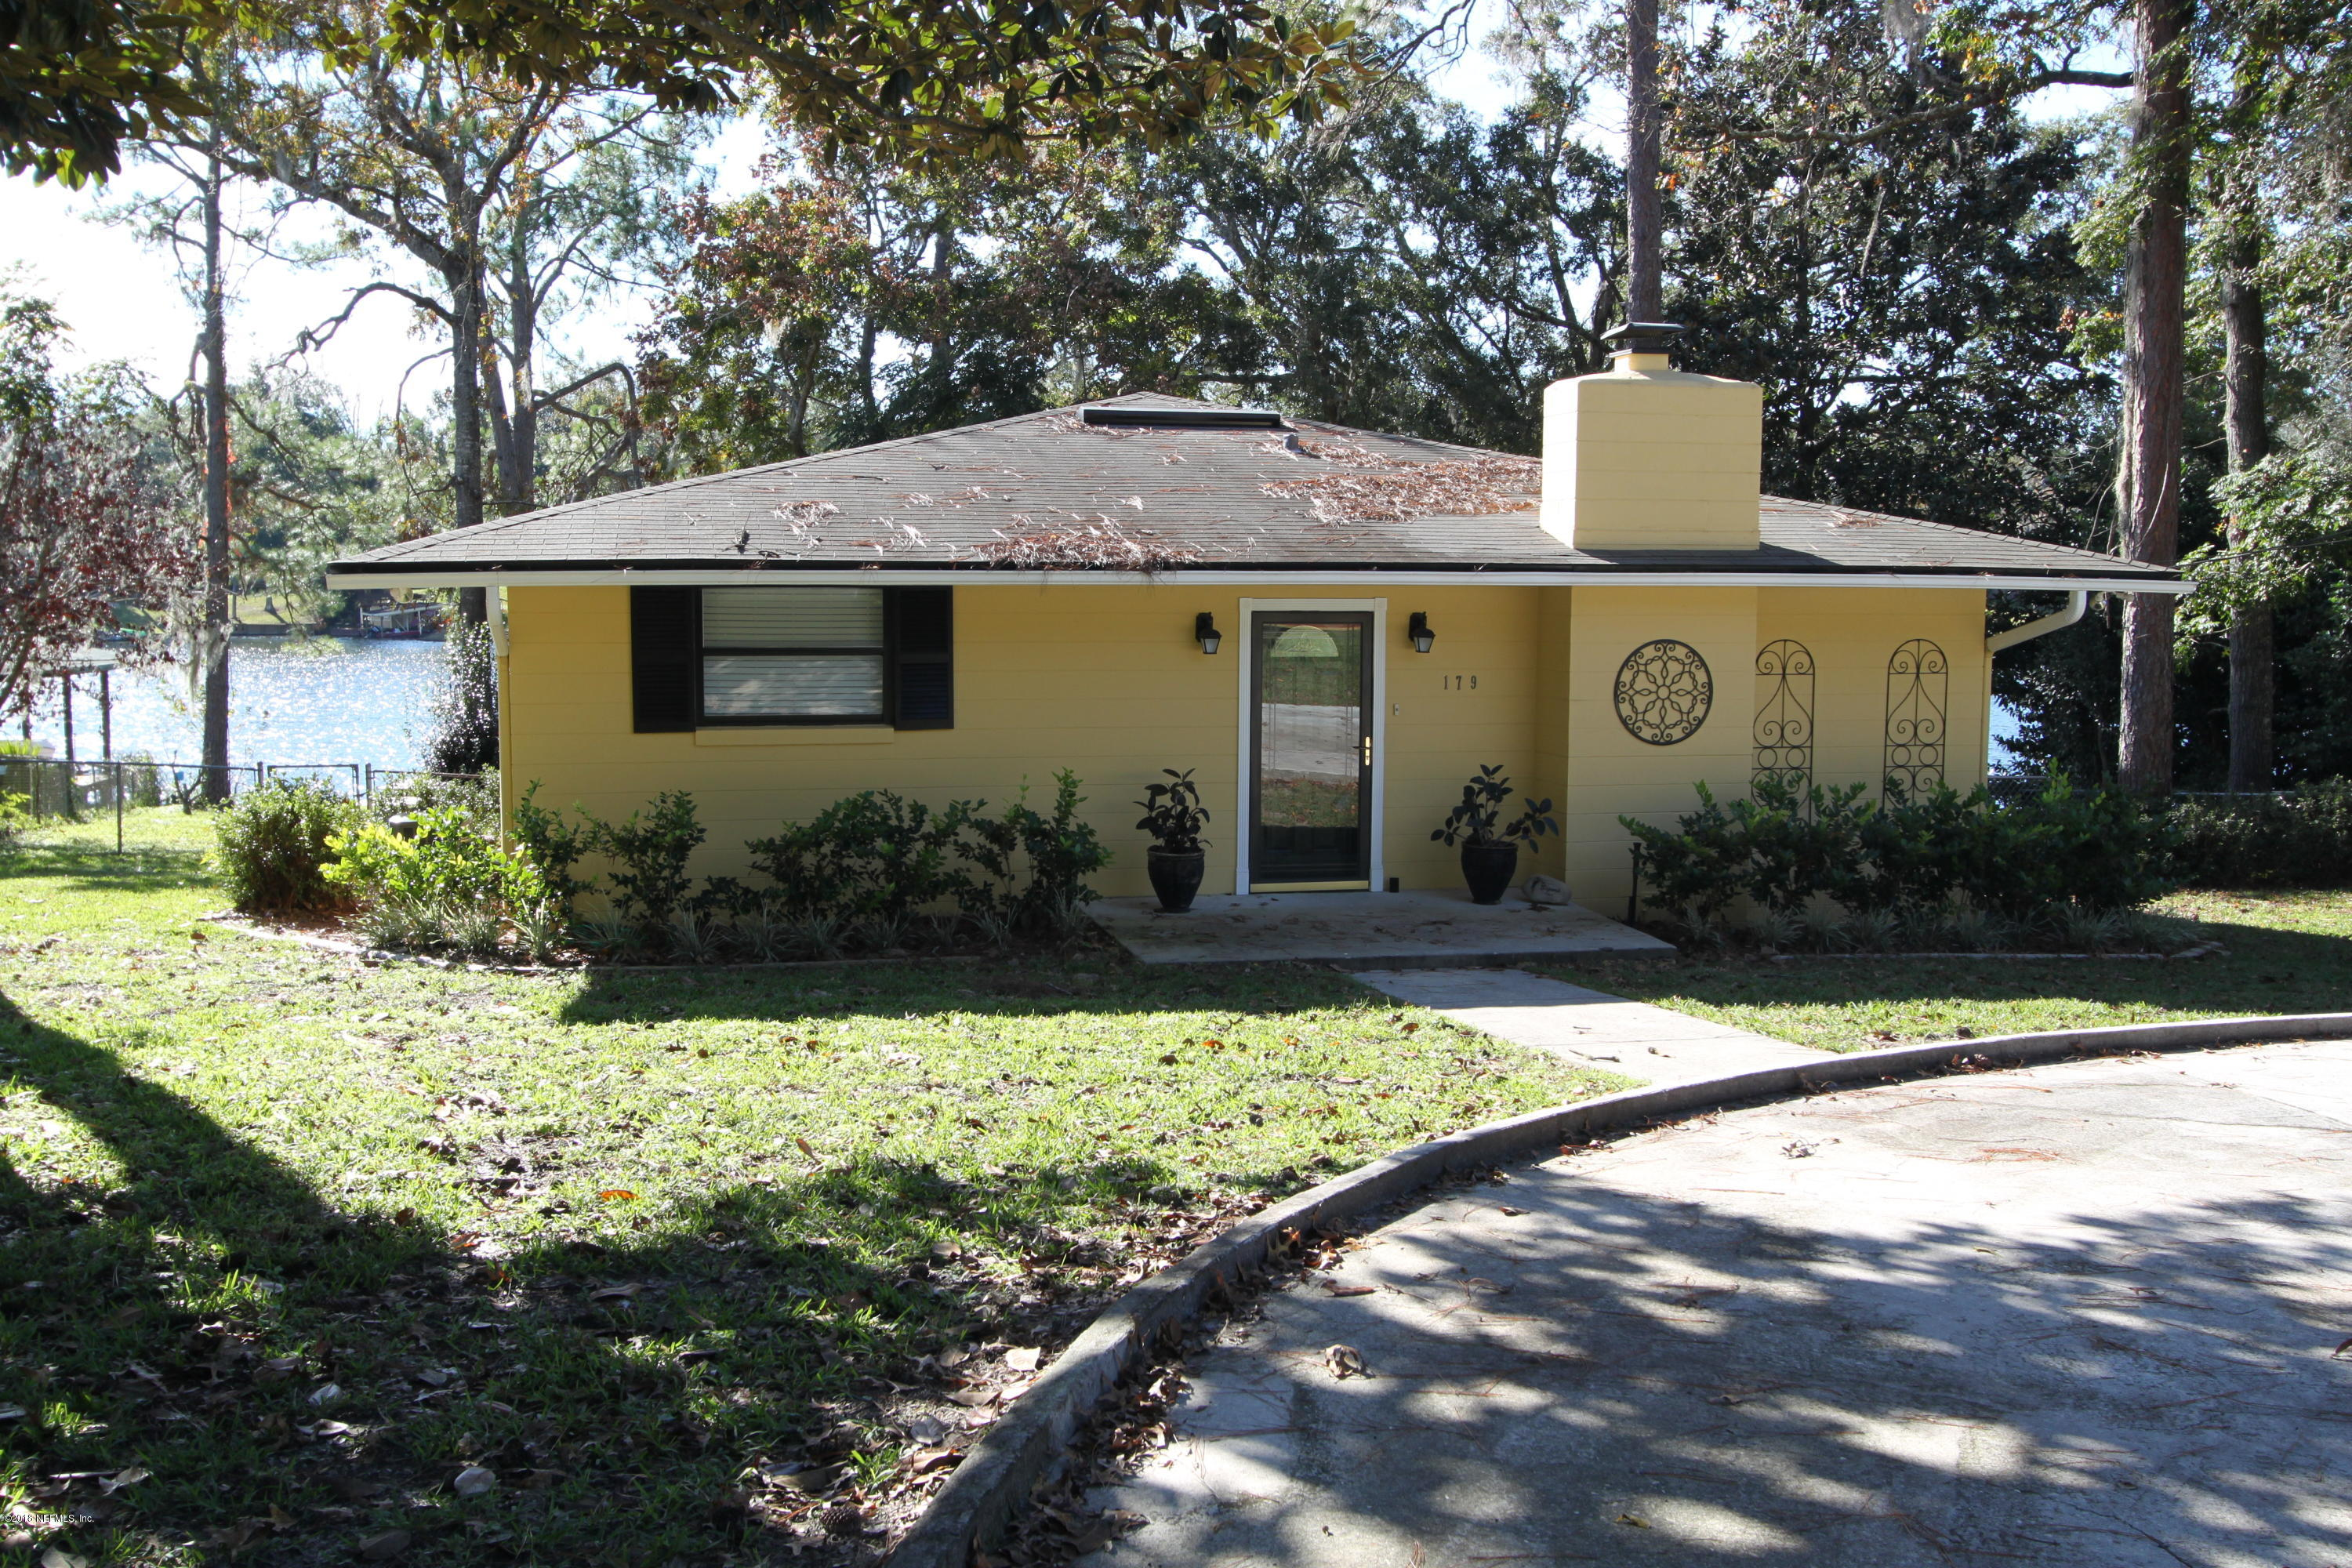 179 ARTHUR MOORE, GREEN COVE SPRINGS, FLORIDA 32043, 3 Bedrooms Bedrooms, ,2 BathroomsBathrooms,Residential - single family,For sale,ARTHUR MOORE,970052